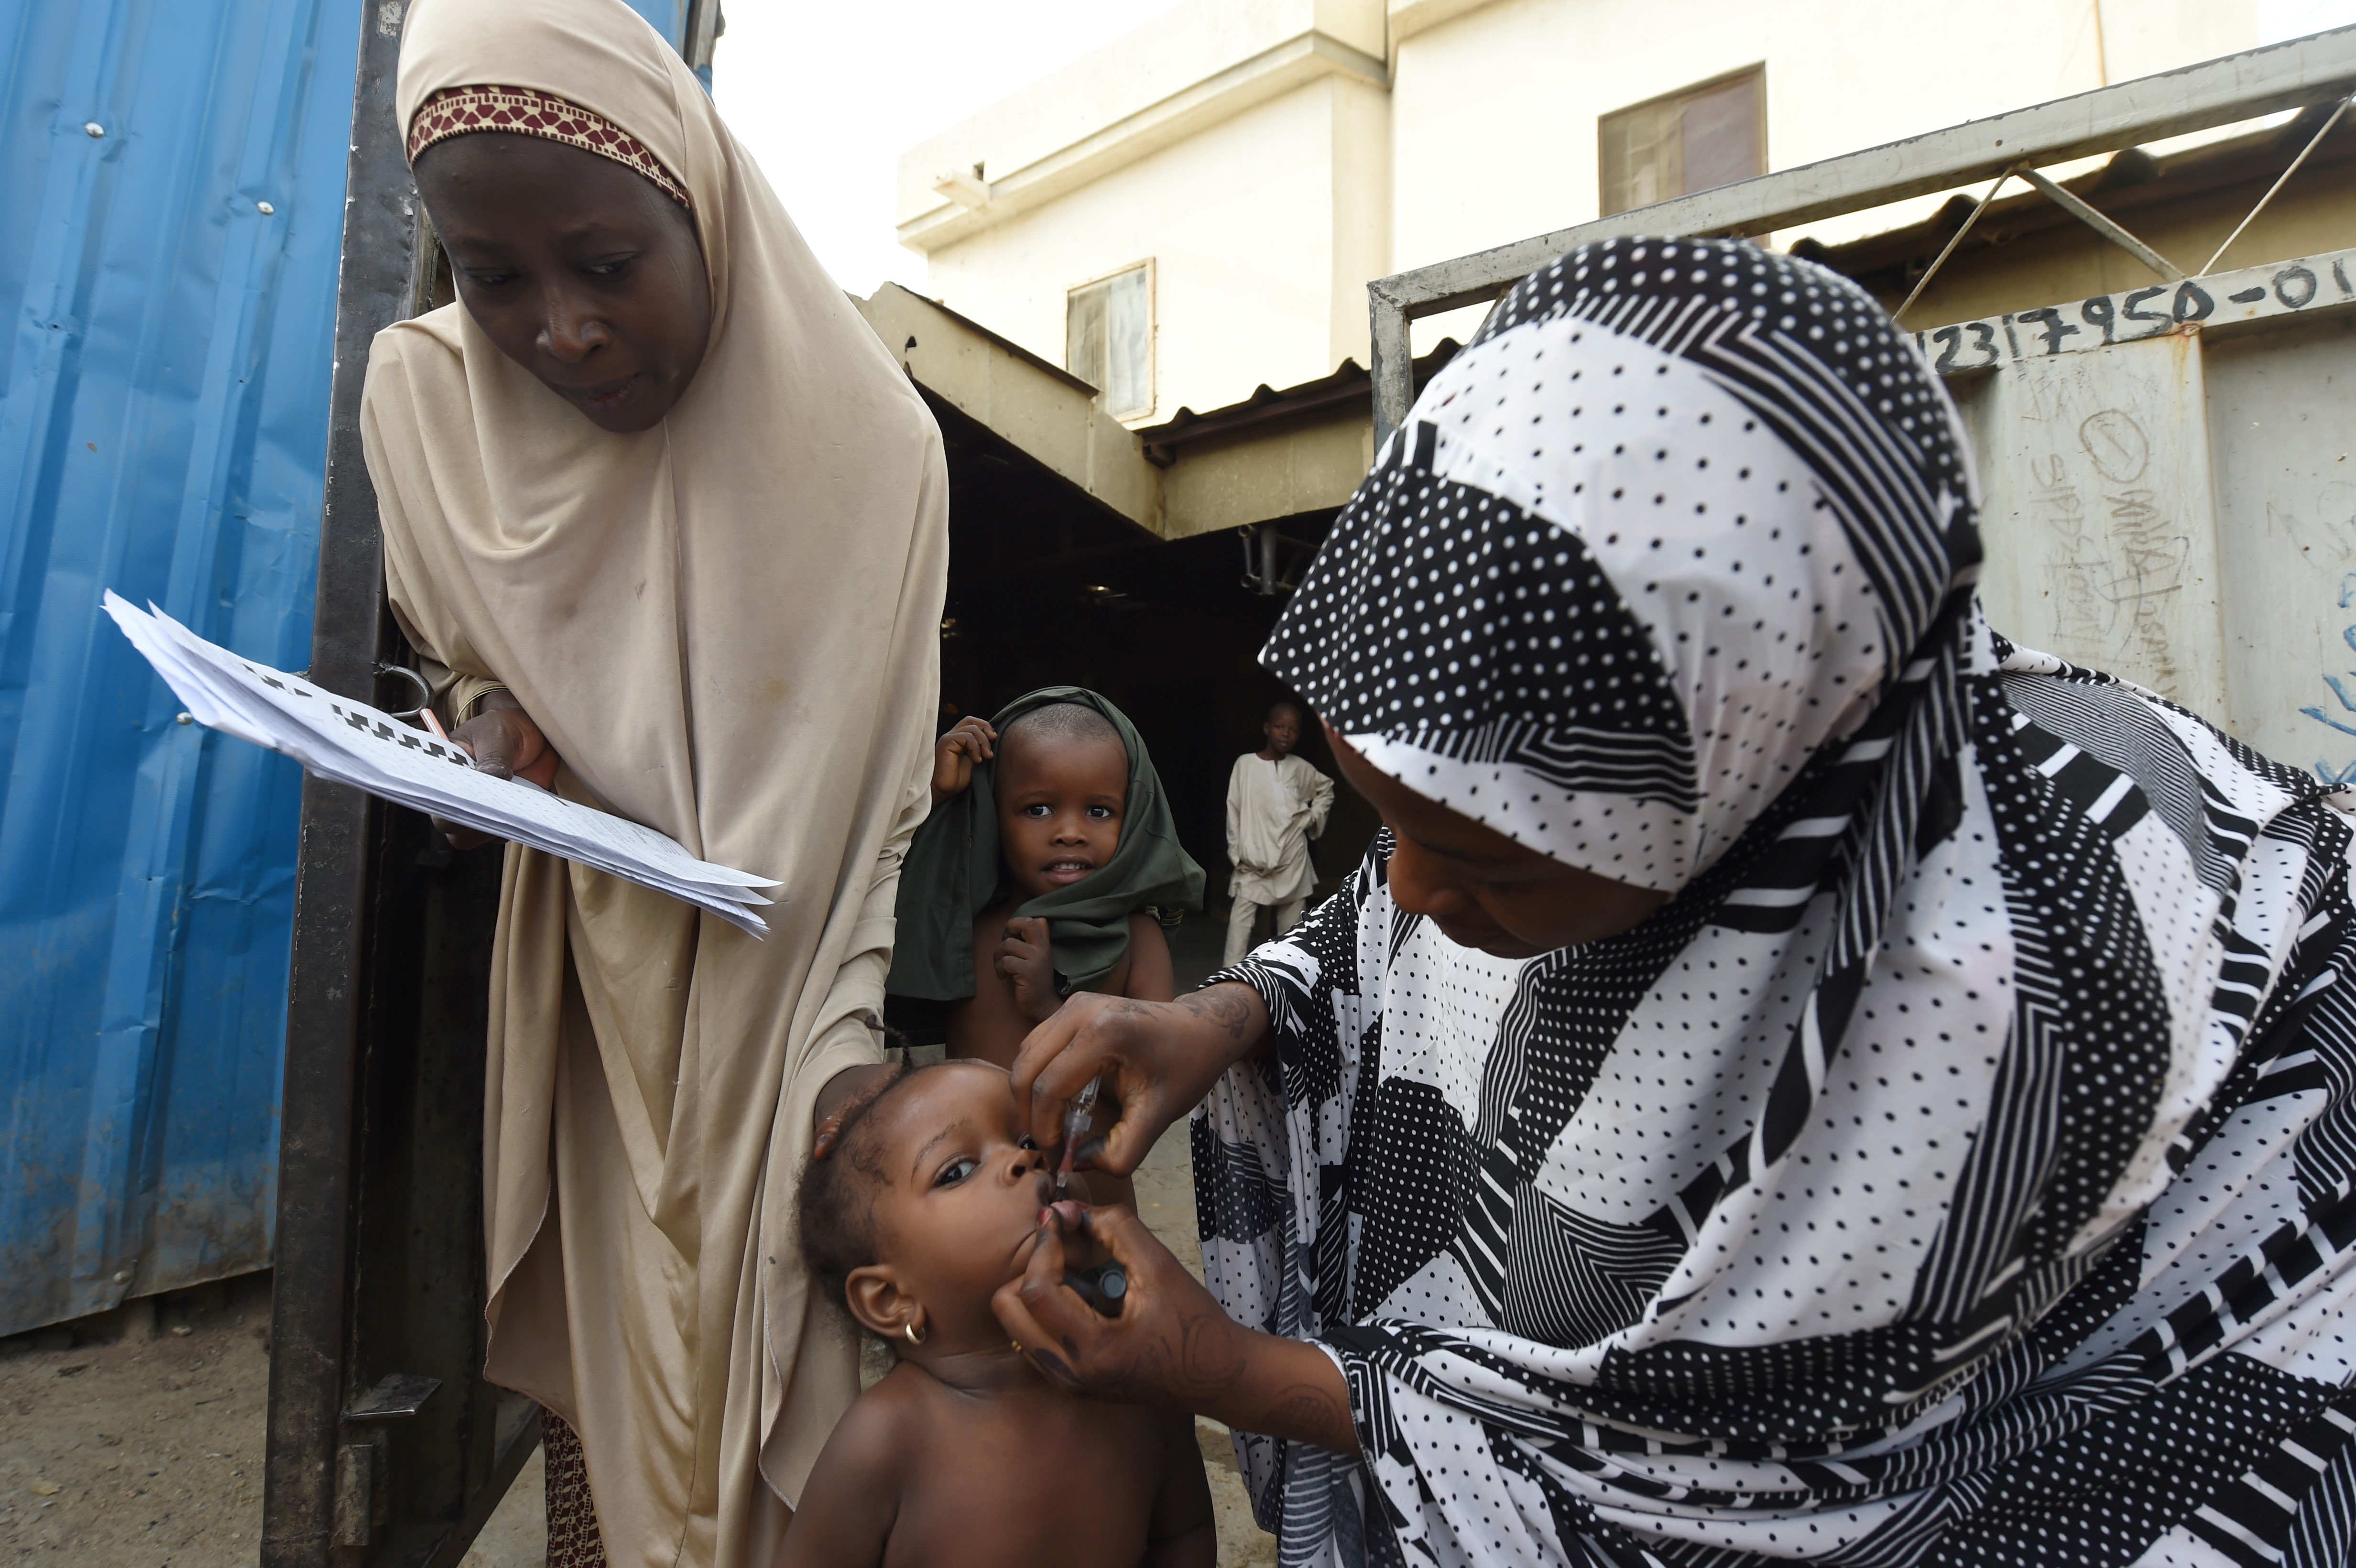 Health worker tries to immunise a child during vaccination campaign against polio at Hotoro-Kudu, Nassarawa district of Kano in northwest Nigeria, on April 22, 2017